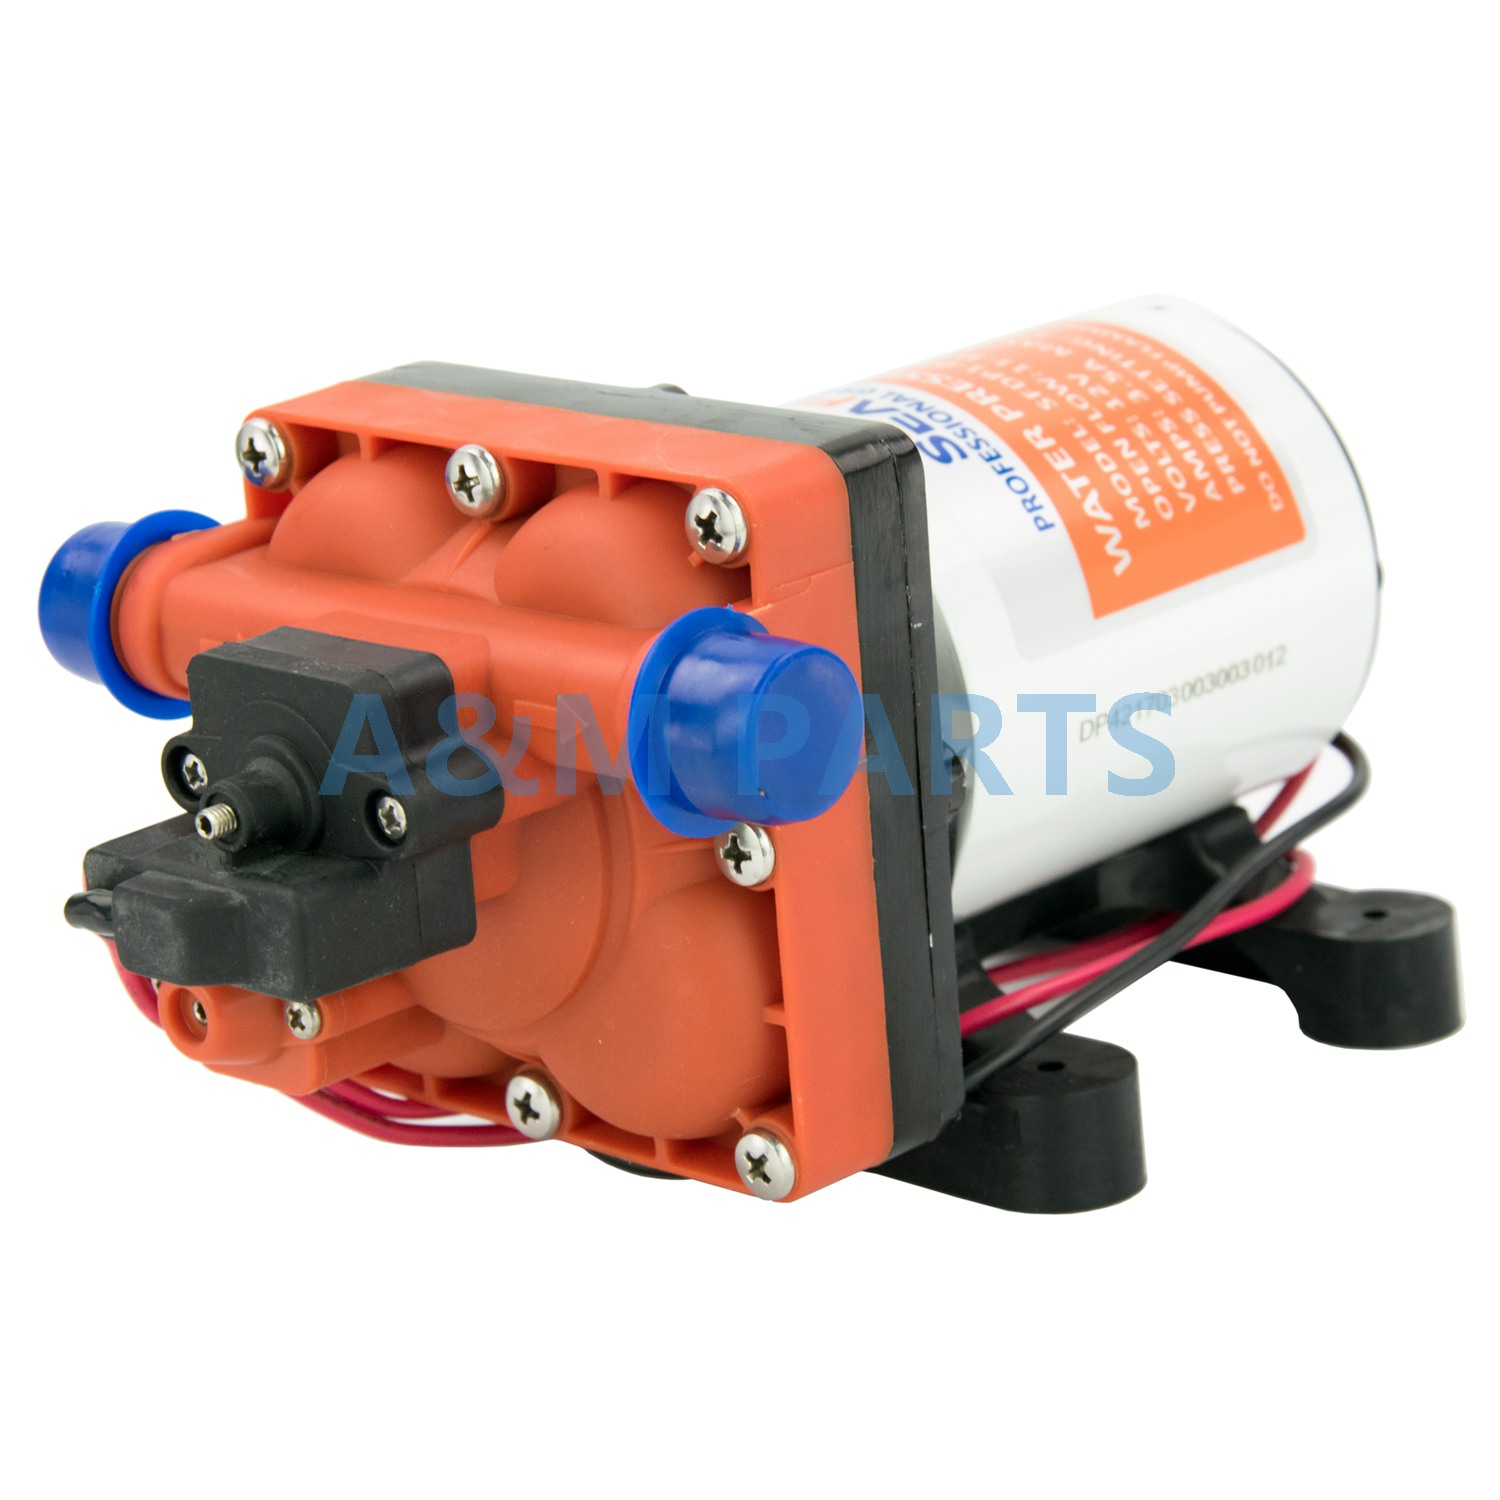 12V 55 PSI 3.0 GPM Self Priming Diaphragm Pump Boat Marine RV Water Pump 12v 60psi 1 3 gpm diaphragm pump boat rv water pressure self priming pump